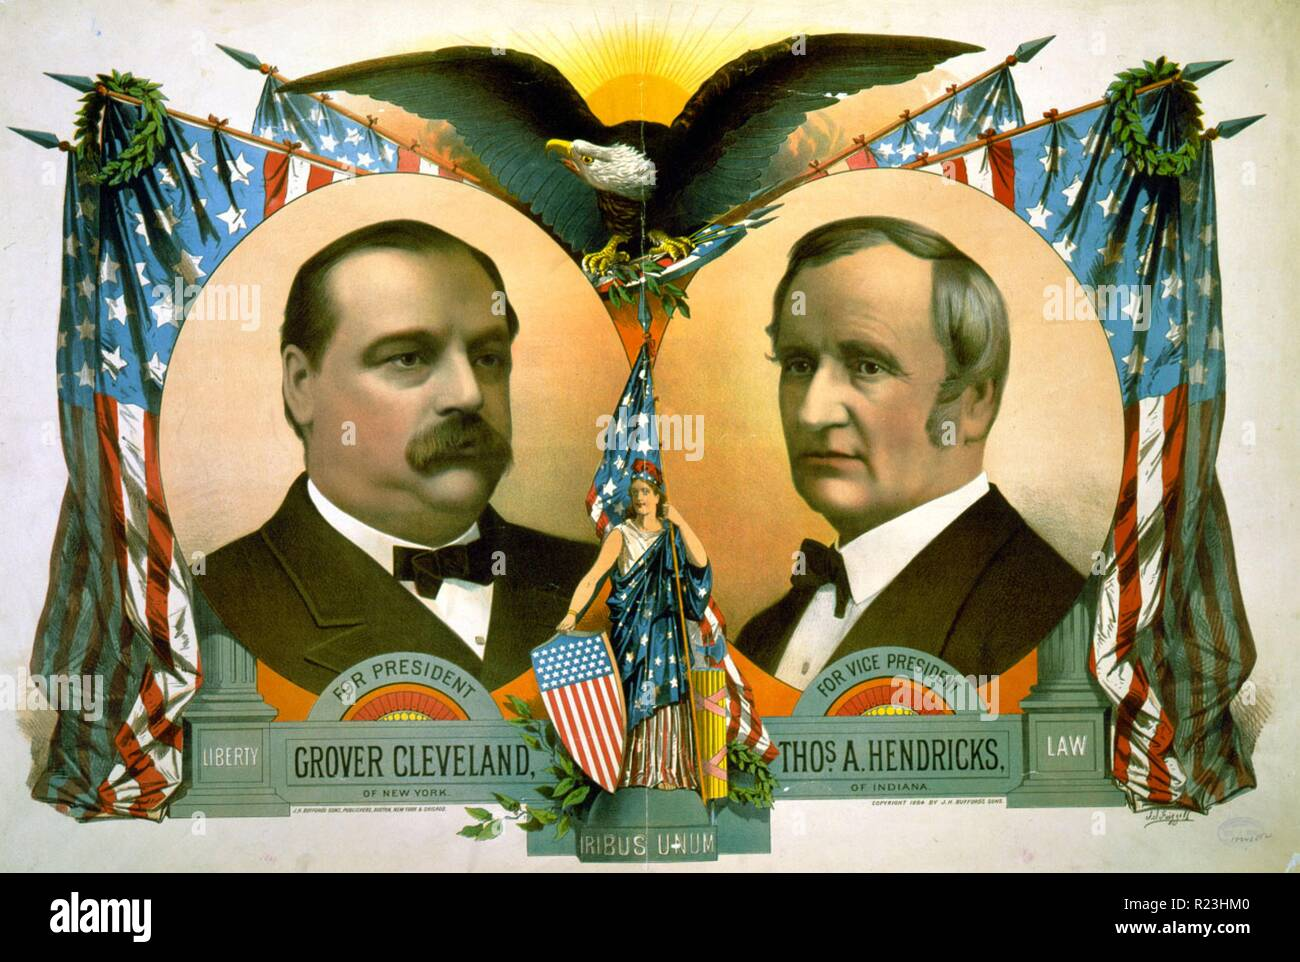 For president, Grover Cleveland of New York. For vice president, Thos. A. Hendricks, of Indiana. Campaign poster showing head-and-shoulders portraits of Grover Cleveland and Thomas A. Hendricks, surrounded by flags. - Stock Image